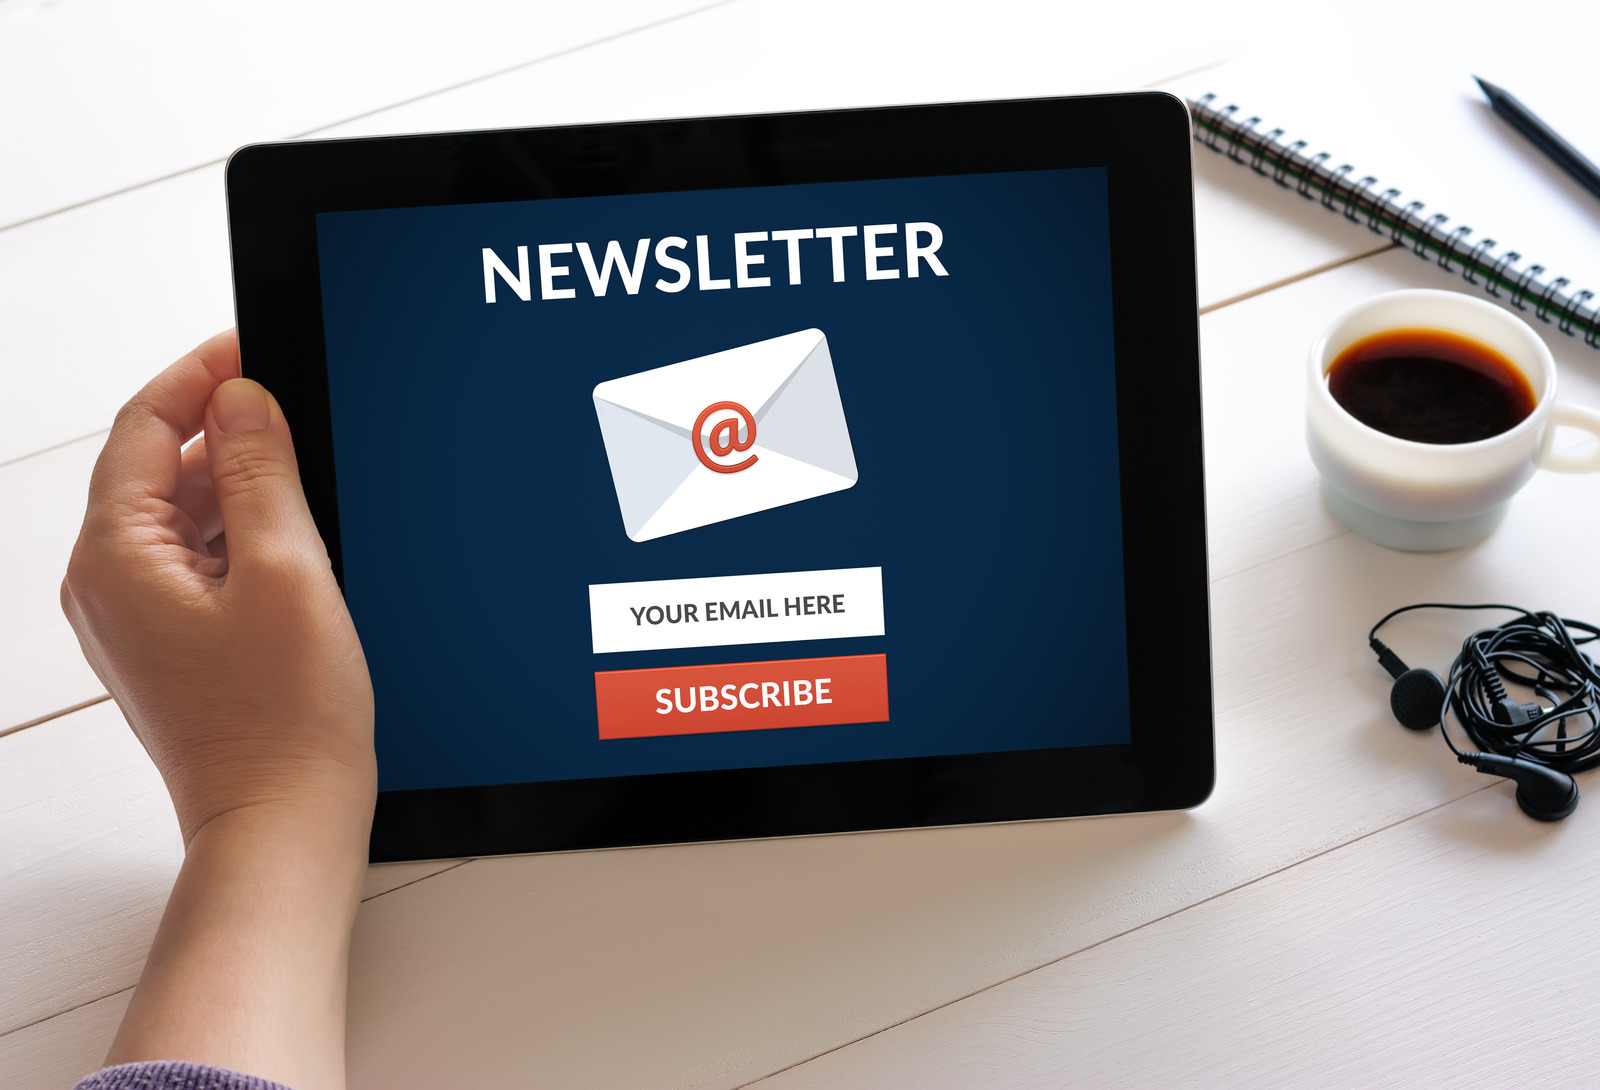 digital marketing plan  digital marketing  digital strategy newsletter